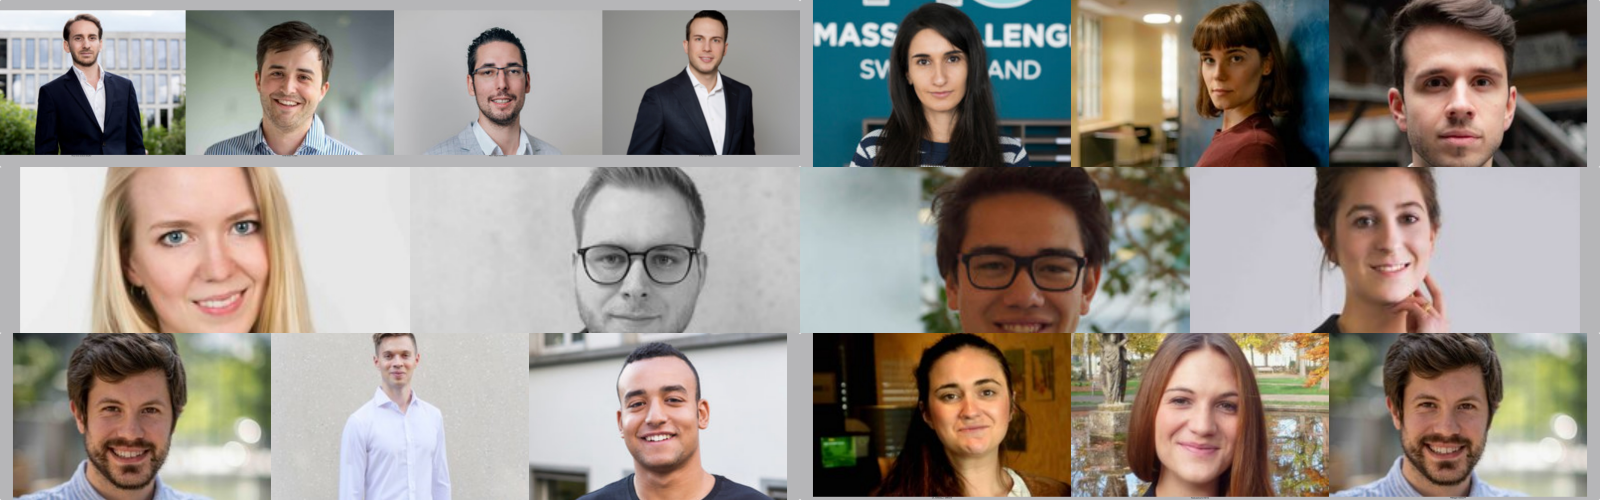 Forbes 30Under30 DACH welcomes 15 Swiss start-up founders